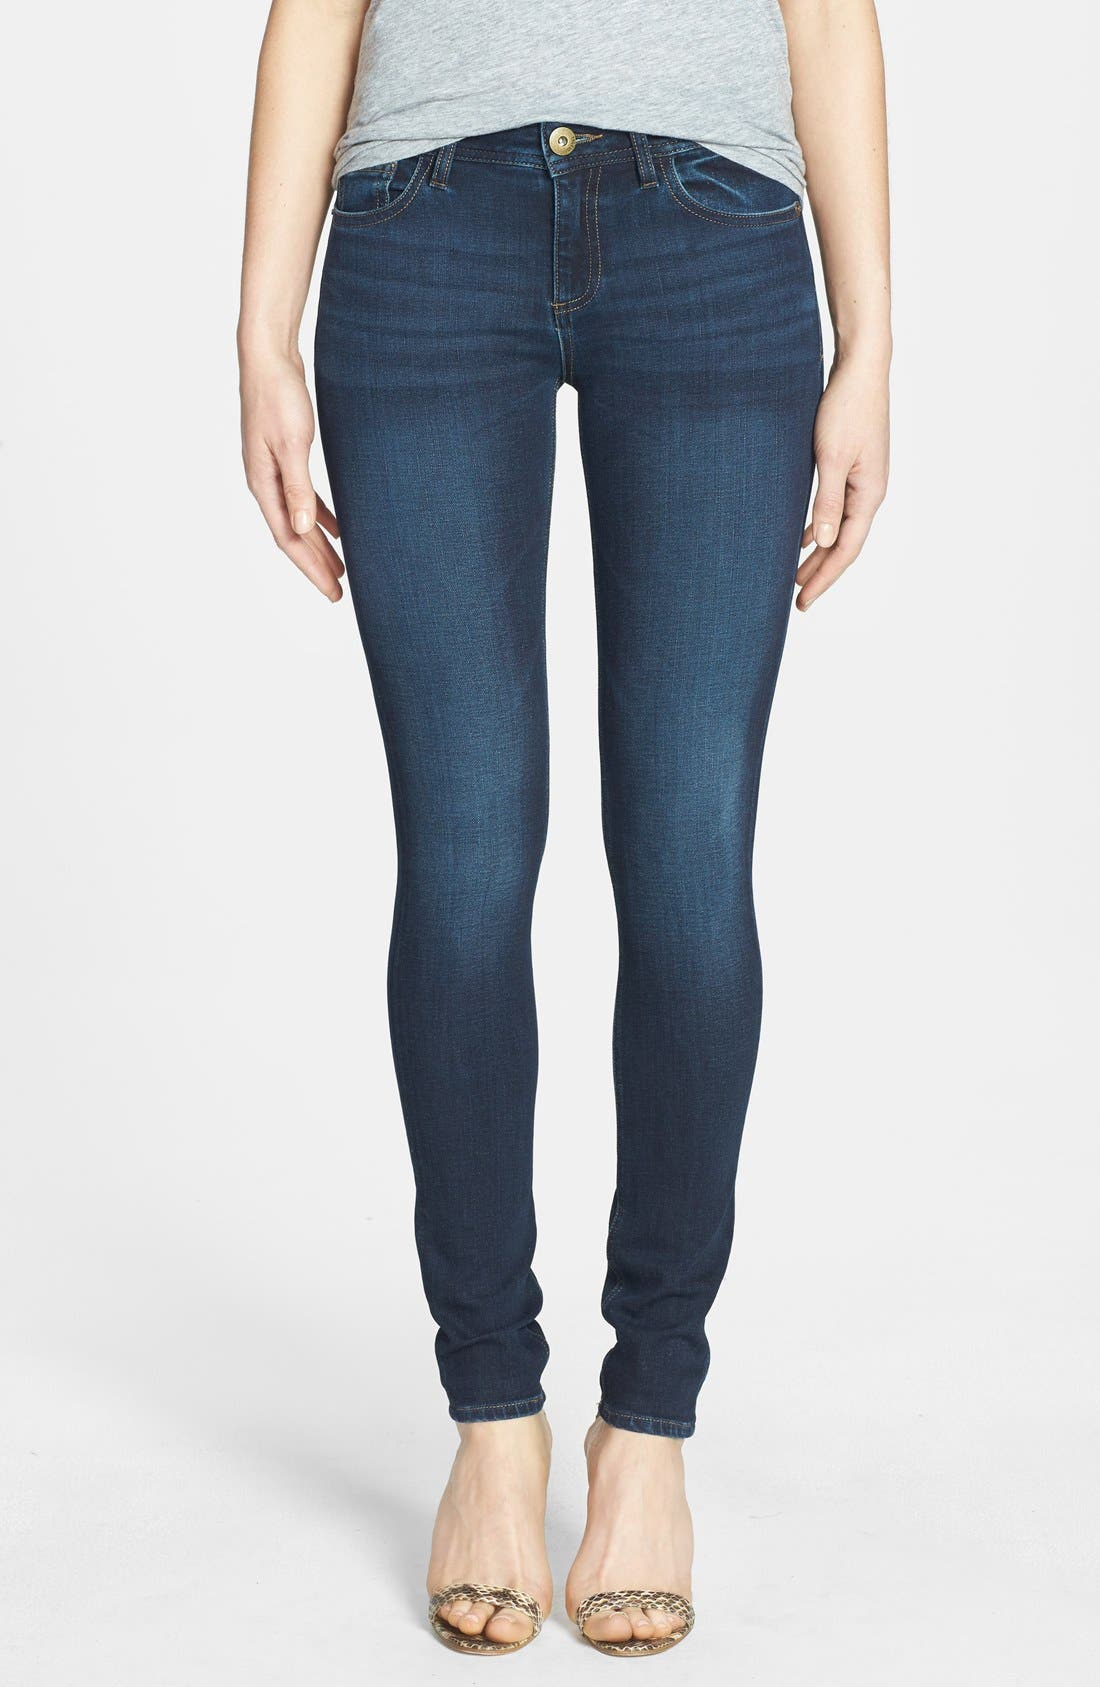 Alternate Image 1 Selected - DL1961 'Florence' Instasculpt Skinny Jeans (Warner)